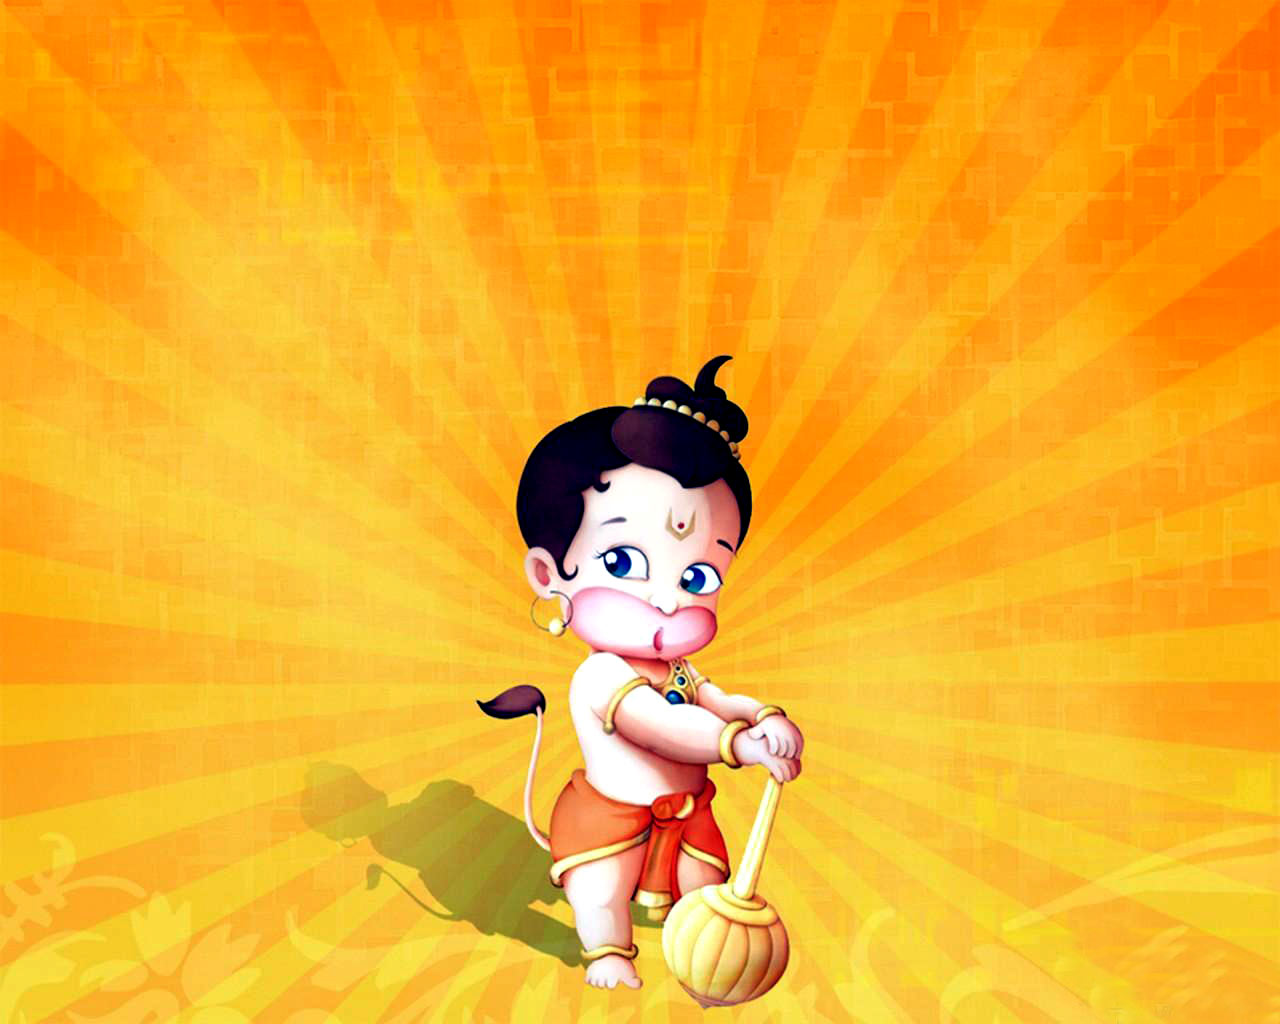 http://4.bp.blogspot.com/-gg53G5W3uA8/UR3UcJdNF0I/AAAAAAAAAzI/bThT_0HX5As/s1600/Lord+Hanuman+HD+Wallpapers10.jpg